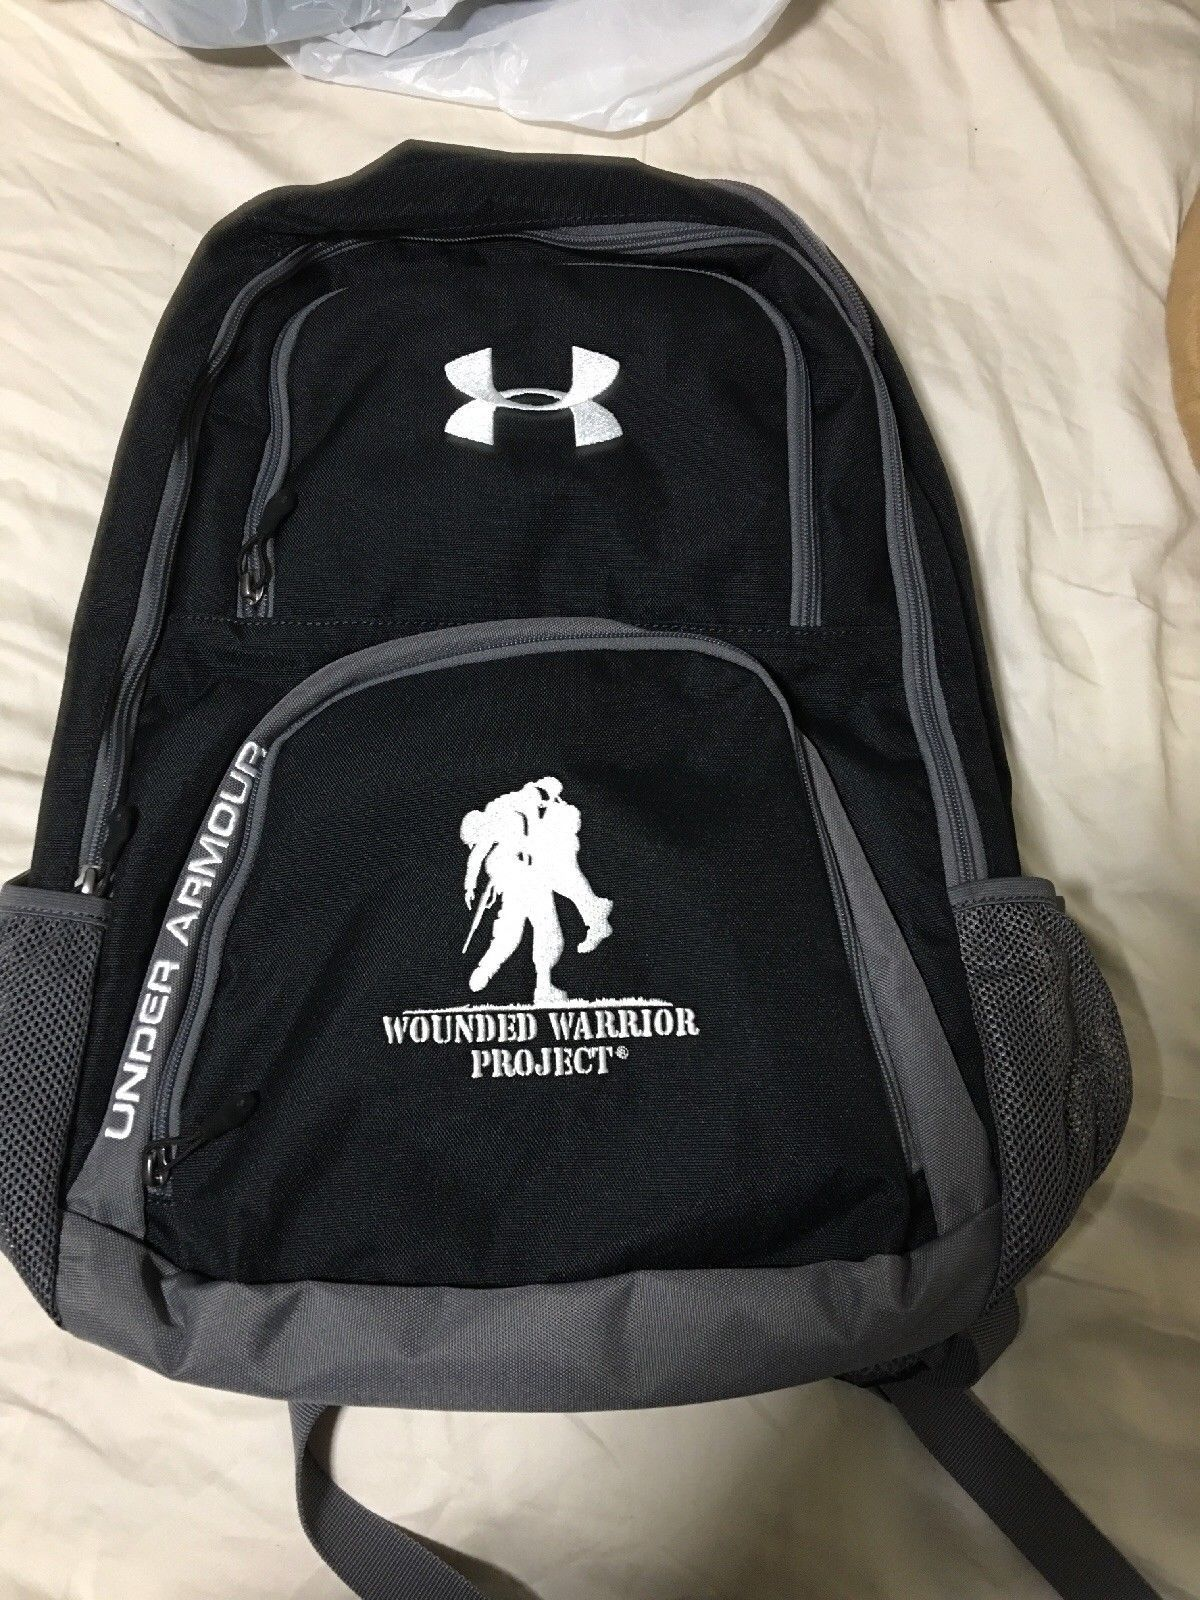 9d45368e Under Armour Wounded Warrior Project and 29 similar items. S l1600